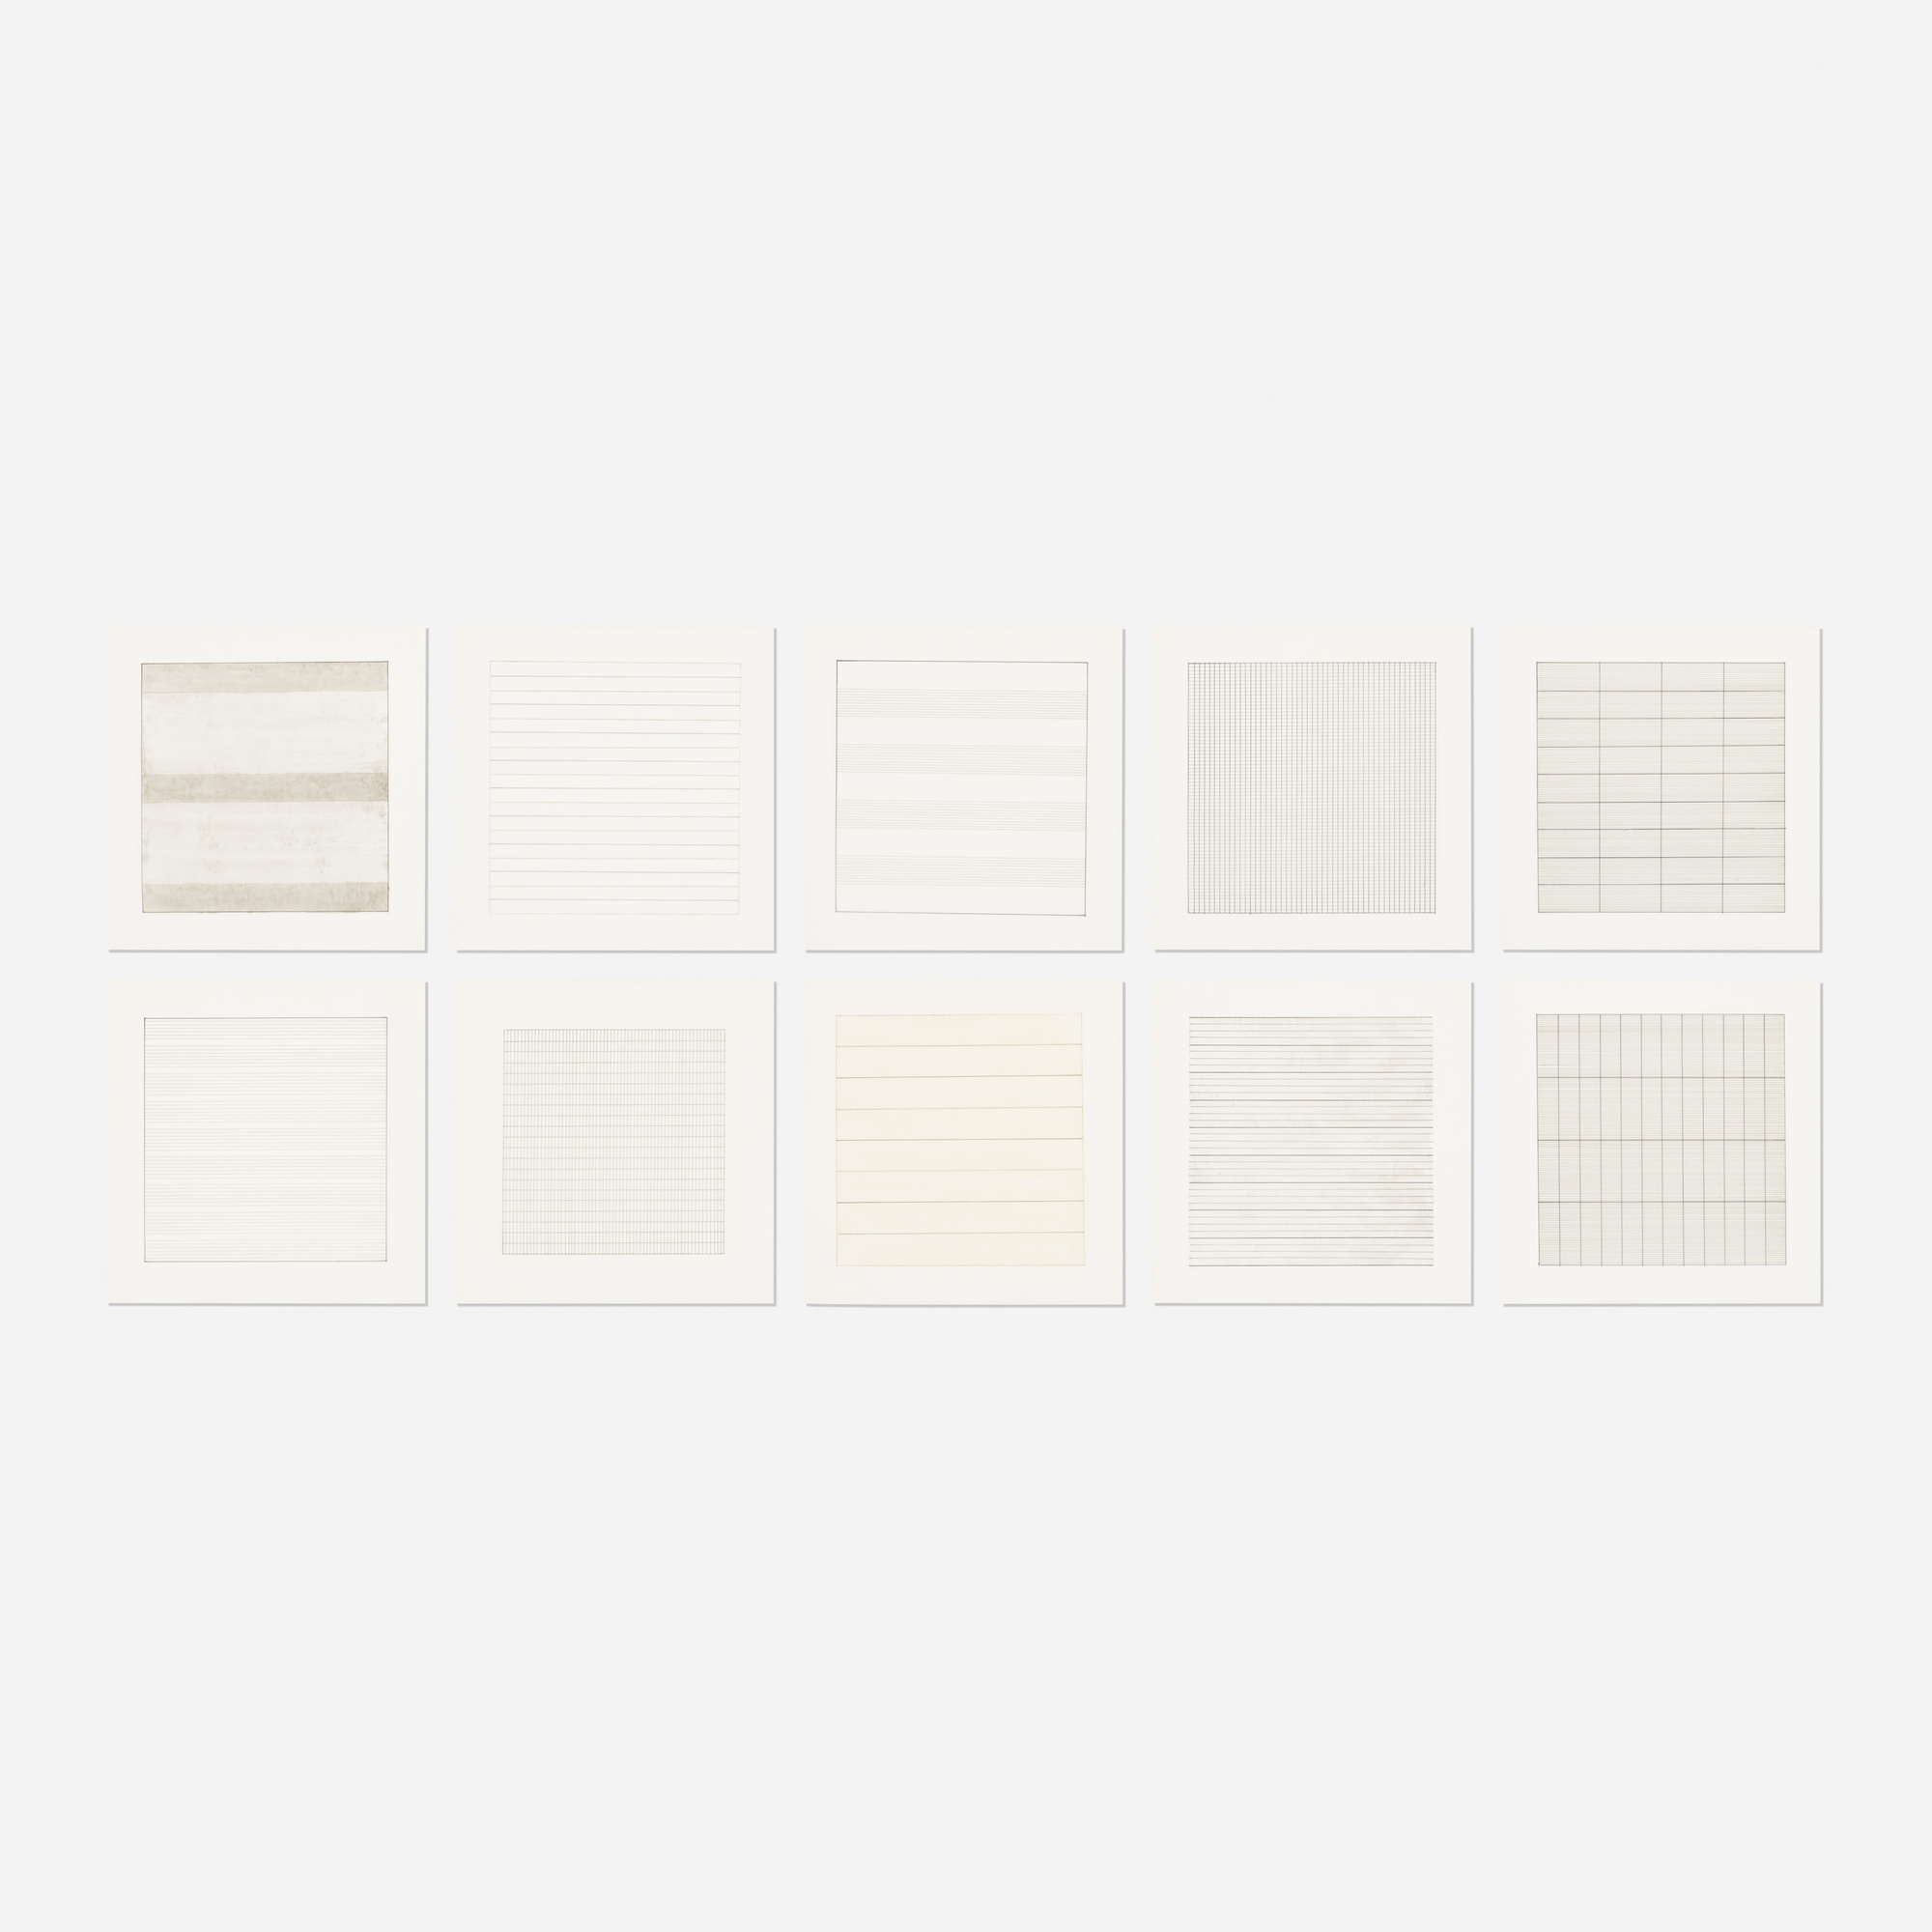 185: Agnes Martin / Paintings and Drawings: Stedelijk Museum Portfolio (ten works) (1 of 1)